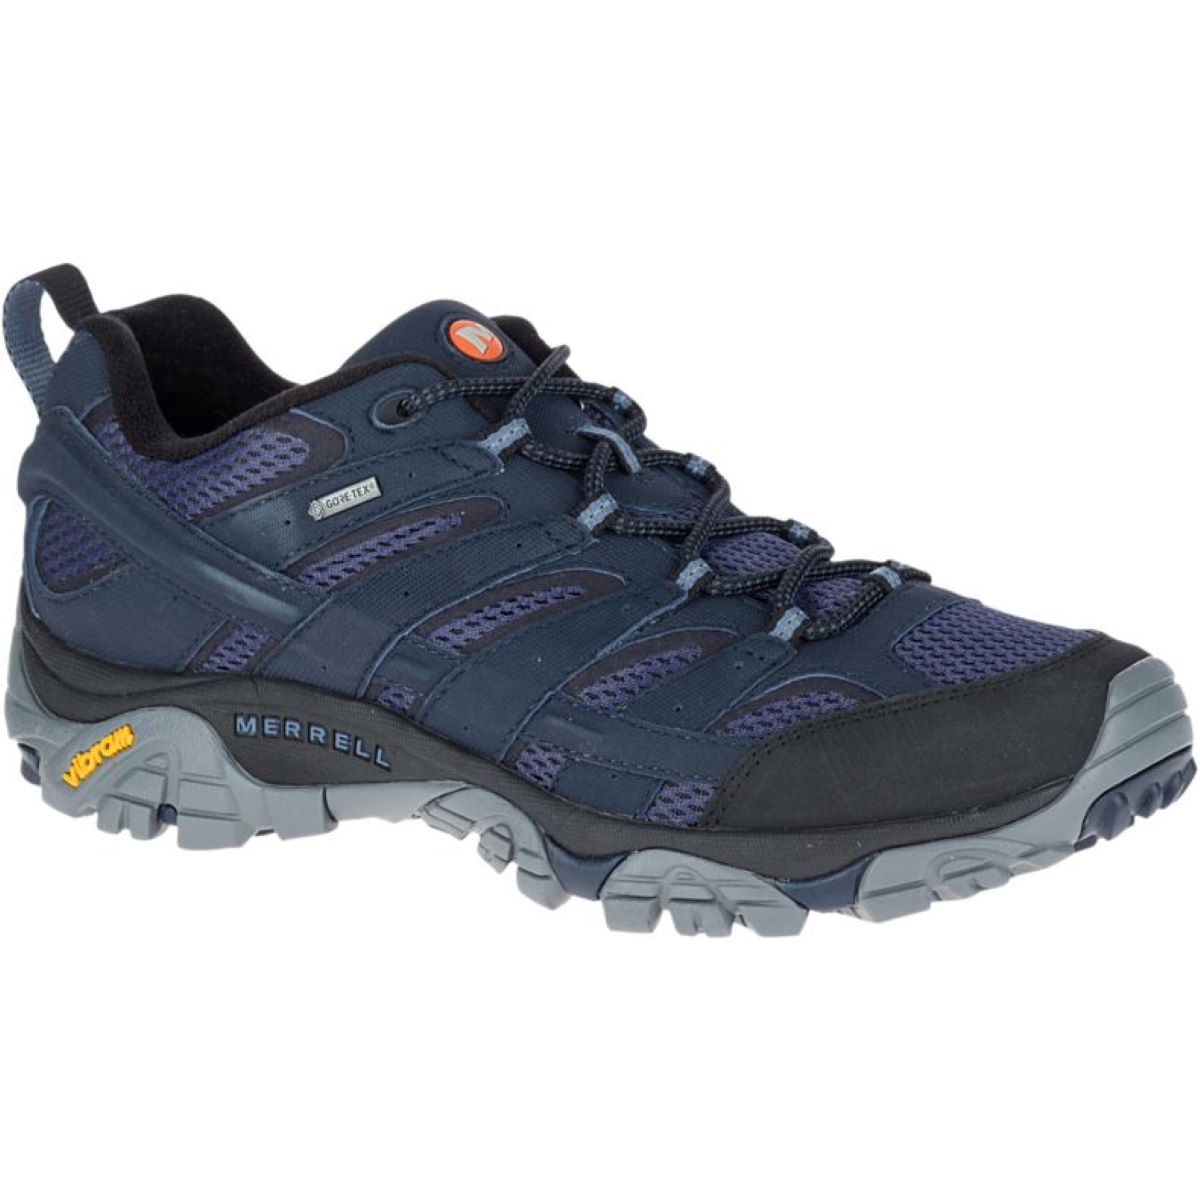 Merrell Moab 2 GTX Shoes - Zapatillas